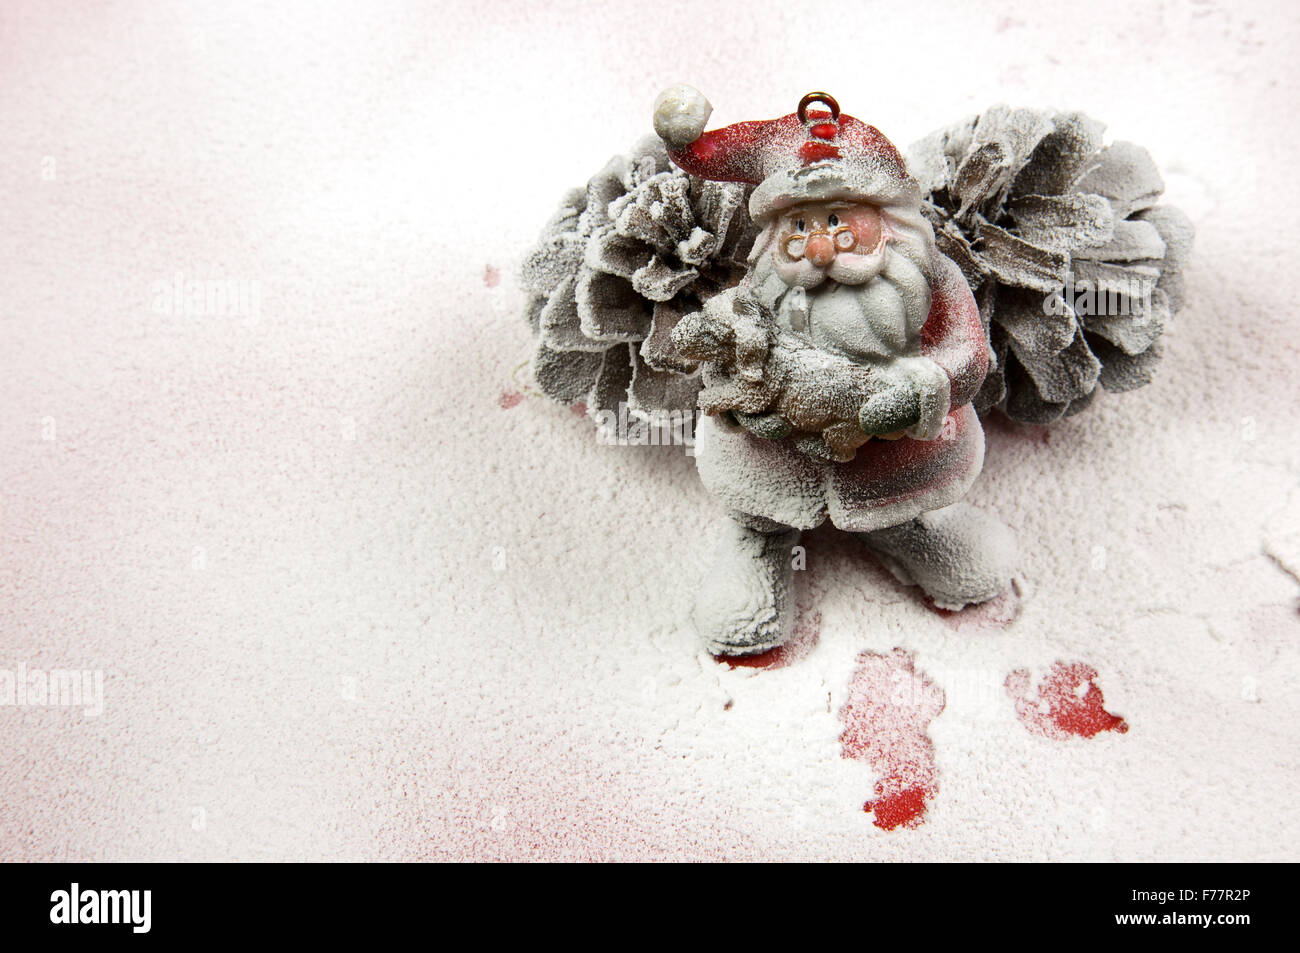 Christmas Decorationsanta Claus Figurine Based On Two Large Spruce Cones On Snow Covered Red Surface And In The Footsteps Of S